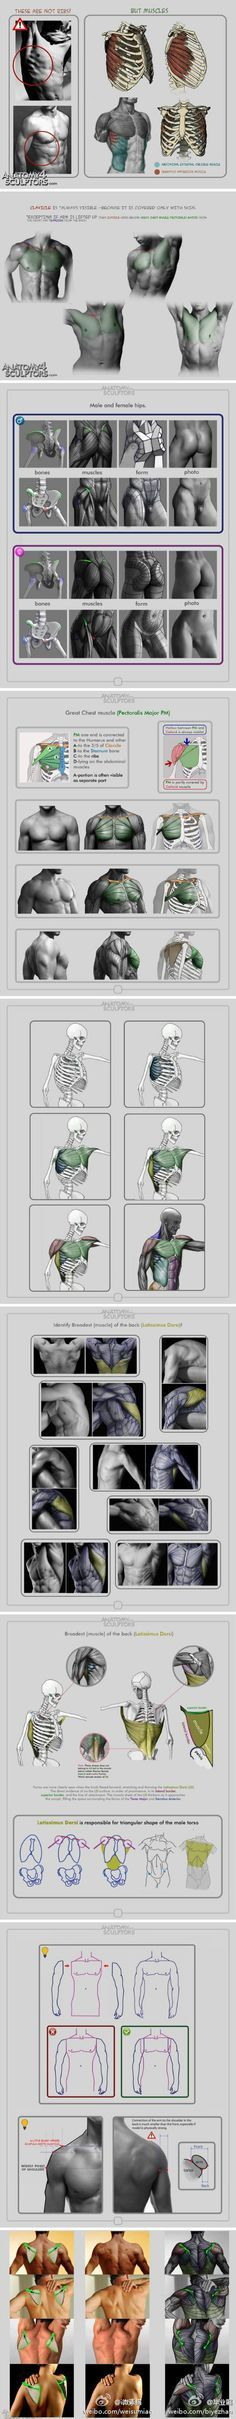 Anatomia, desenho da musculatura.  Dream collected paintings original painting tutorial (327 Figure) _ petals illustration